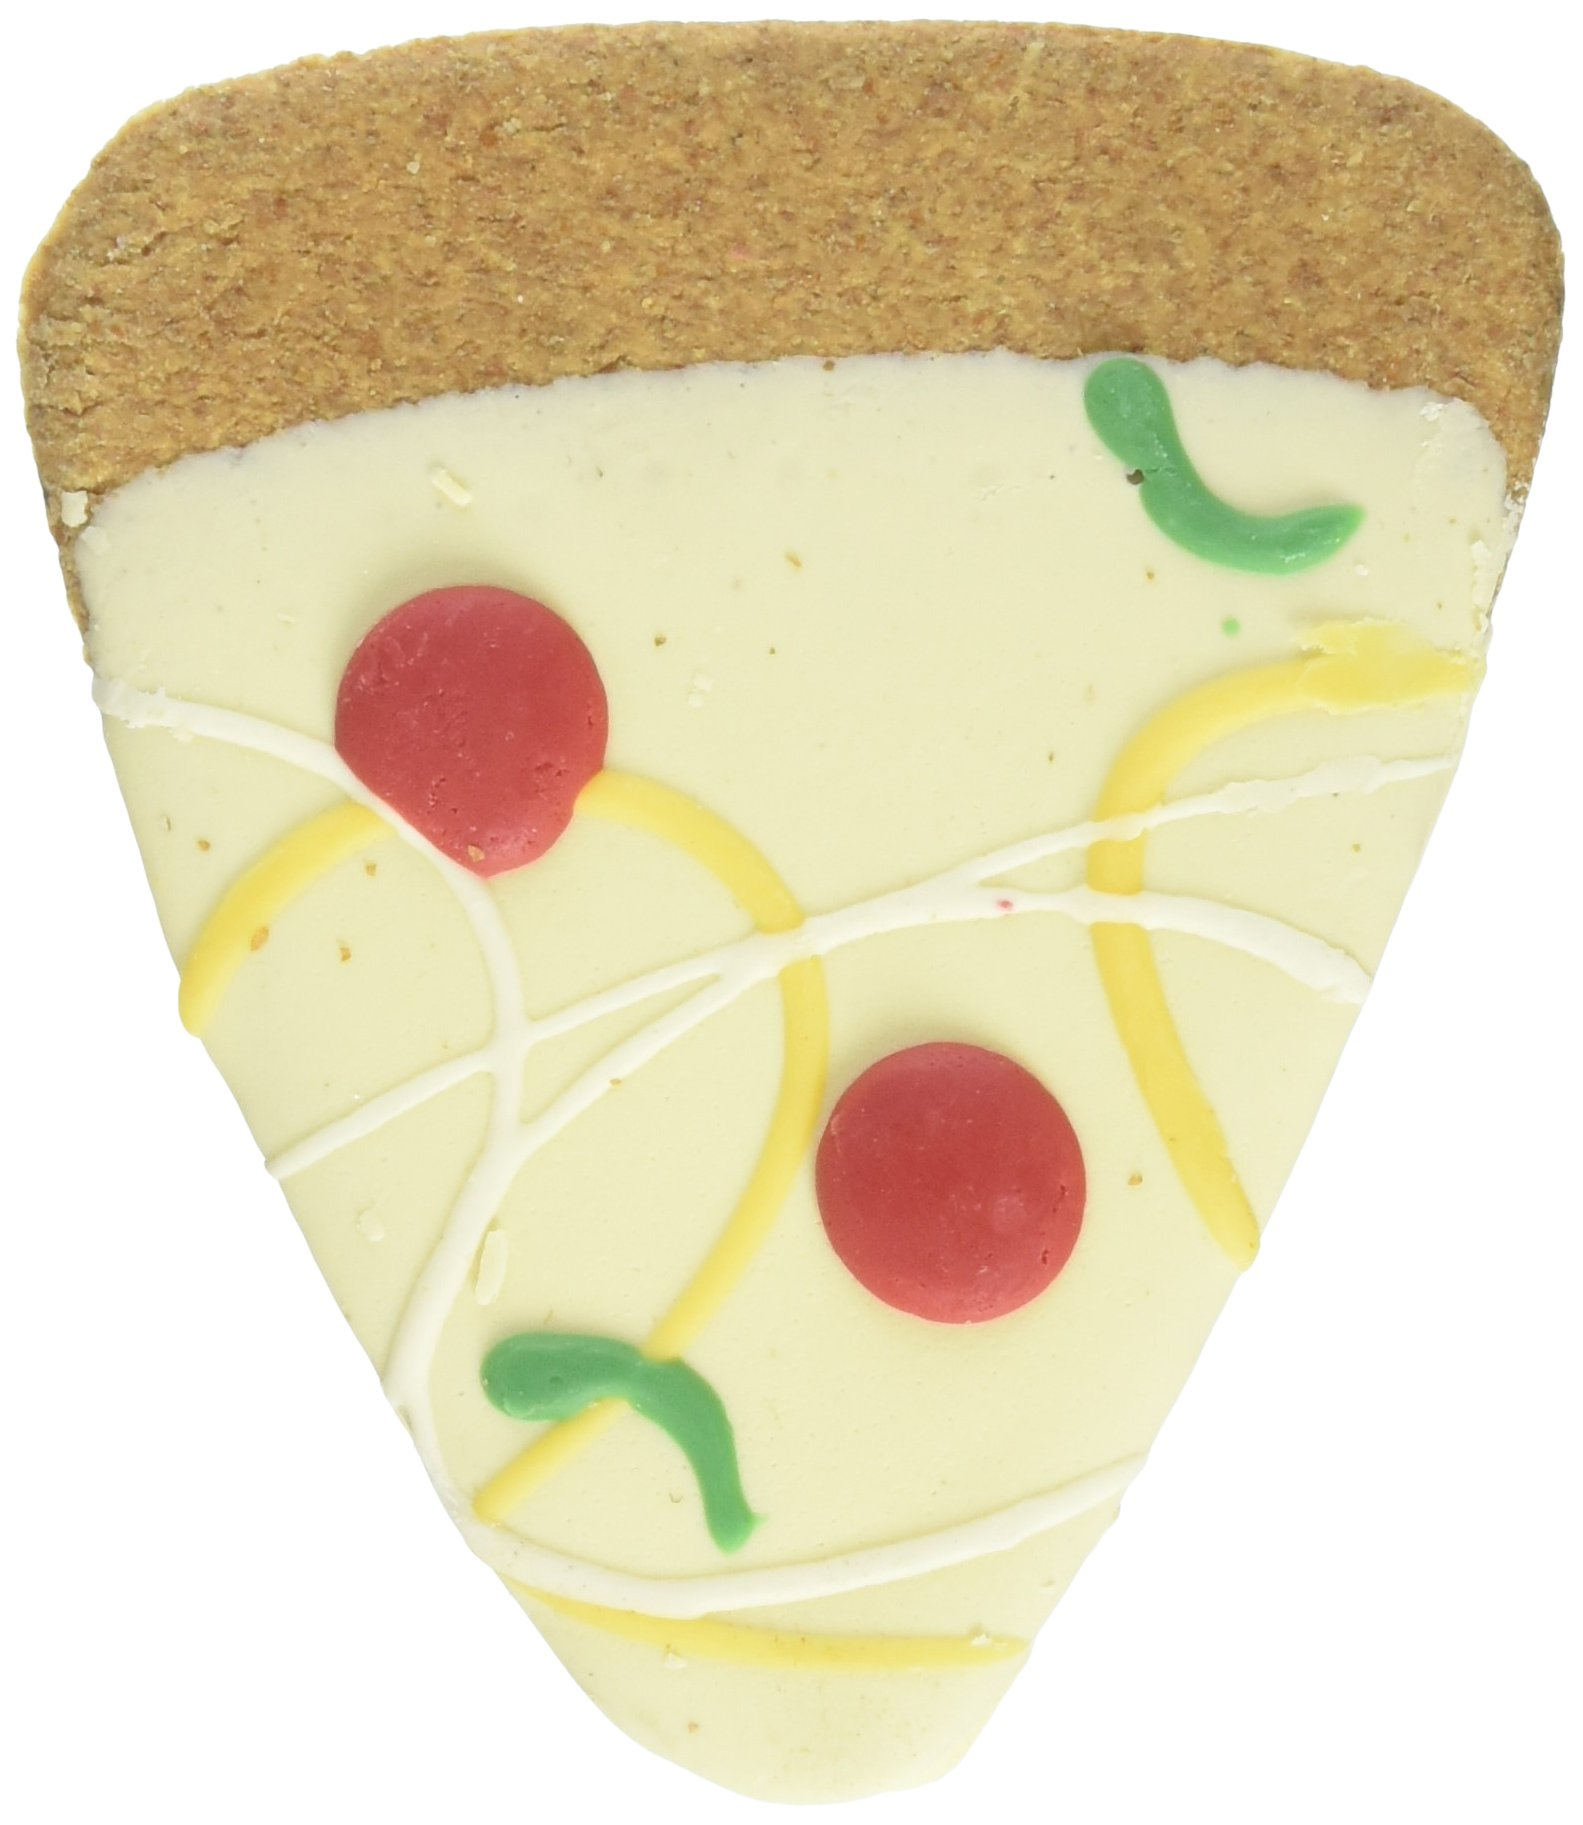 Pawsitively Gourmet Puppy Pizza Cookies for Dogs by Pawsitively Gourmet